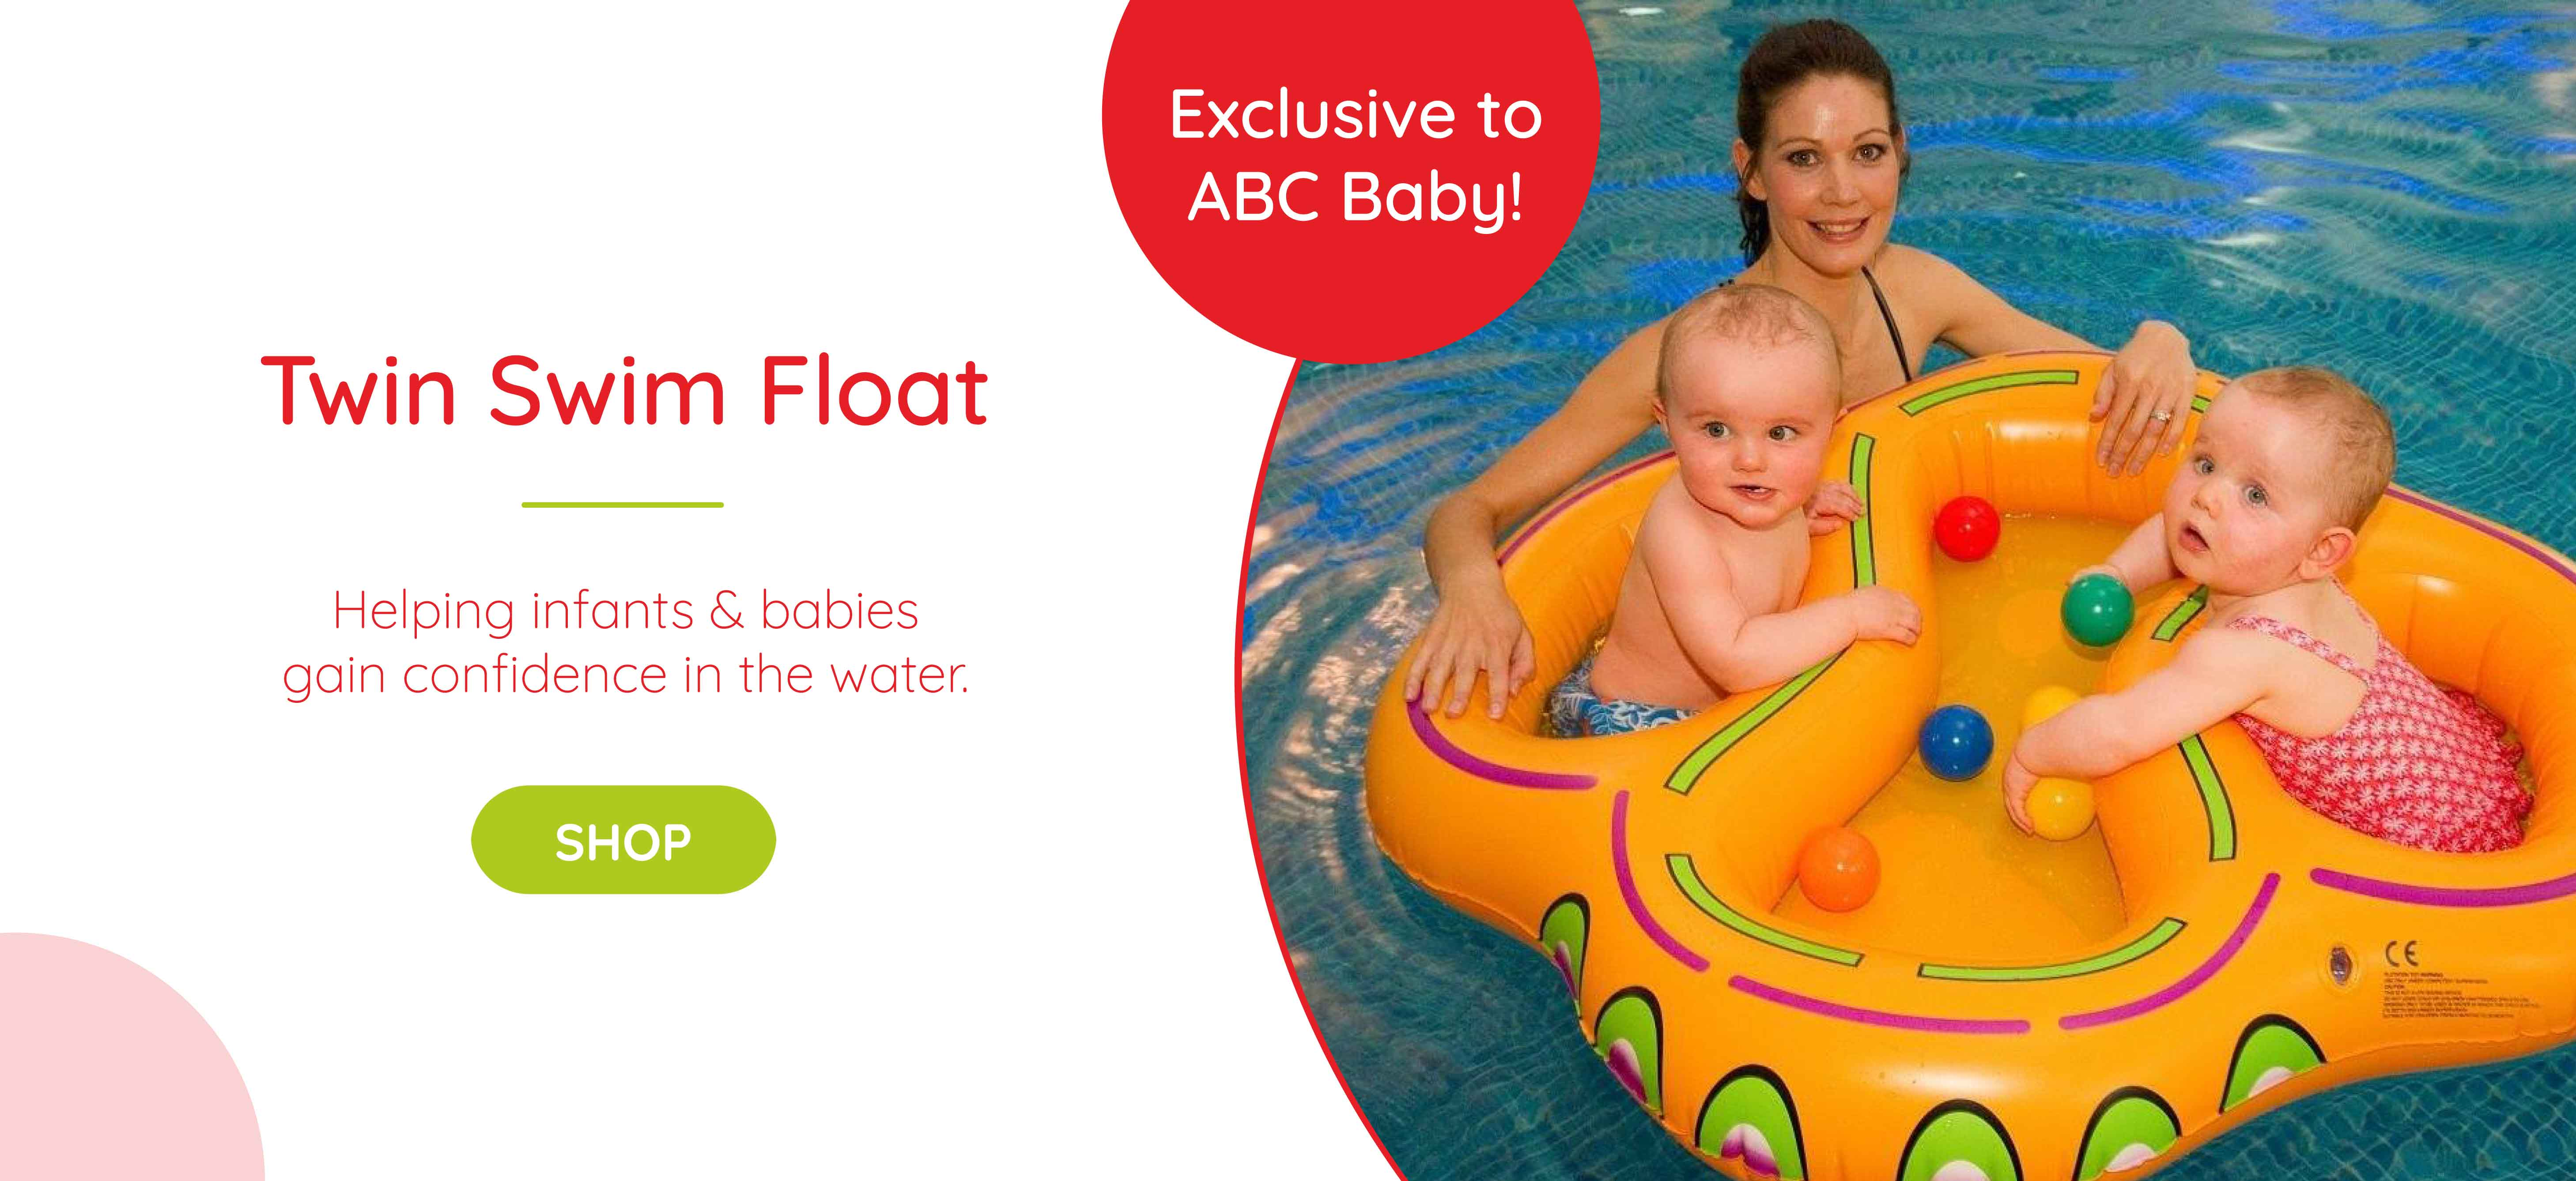 Twin swim float - shop now